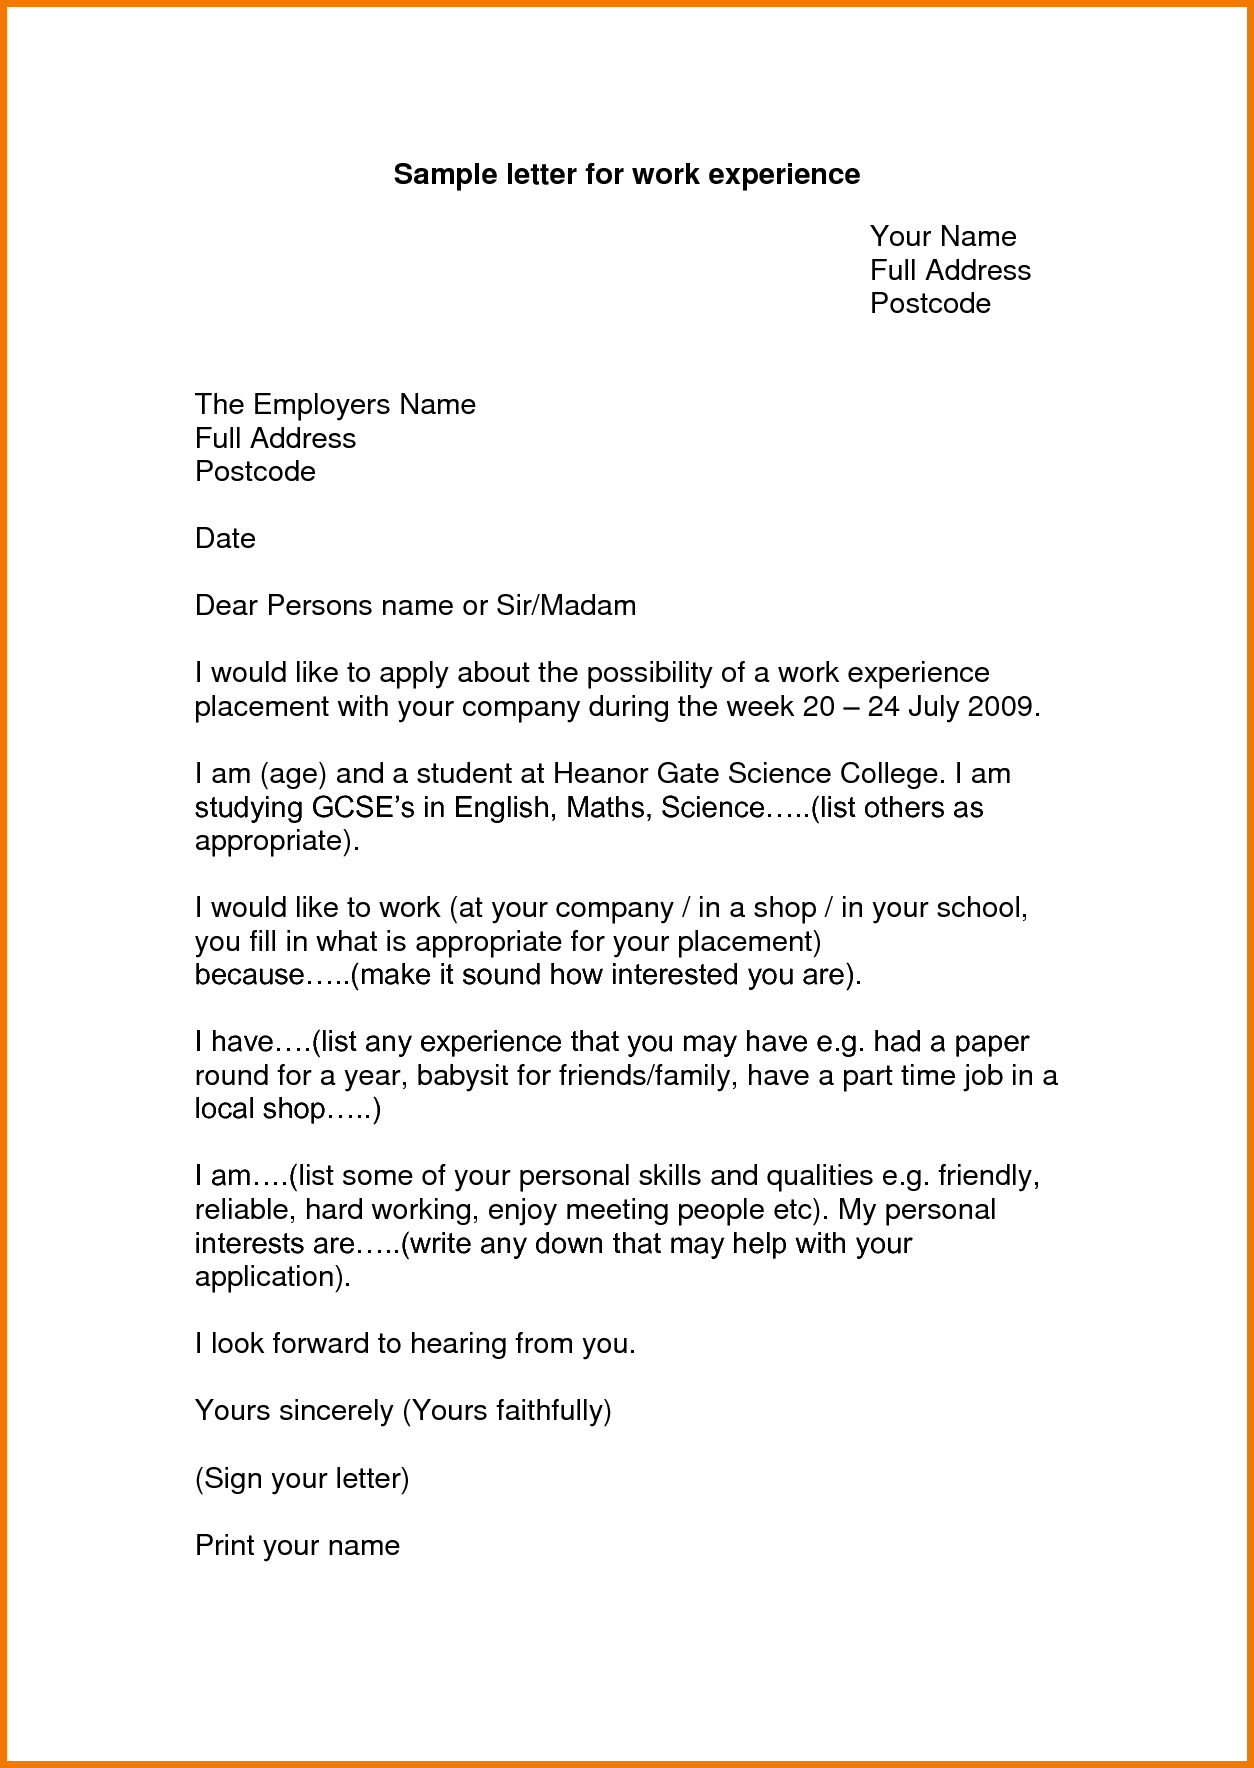 Experience letter format for work appeal letters sample certificate experience letter format for work appeal letters sample certificate template free word excel pdf documents download yadclub Gallery